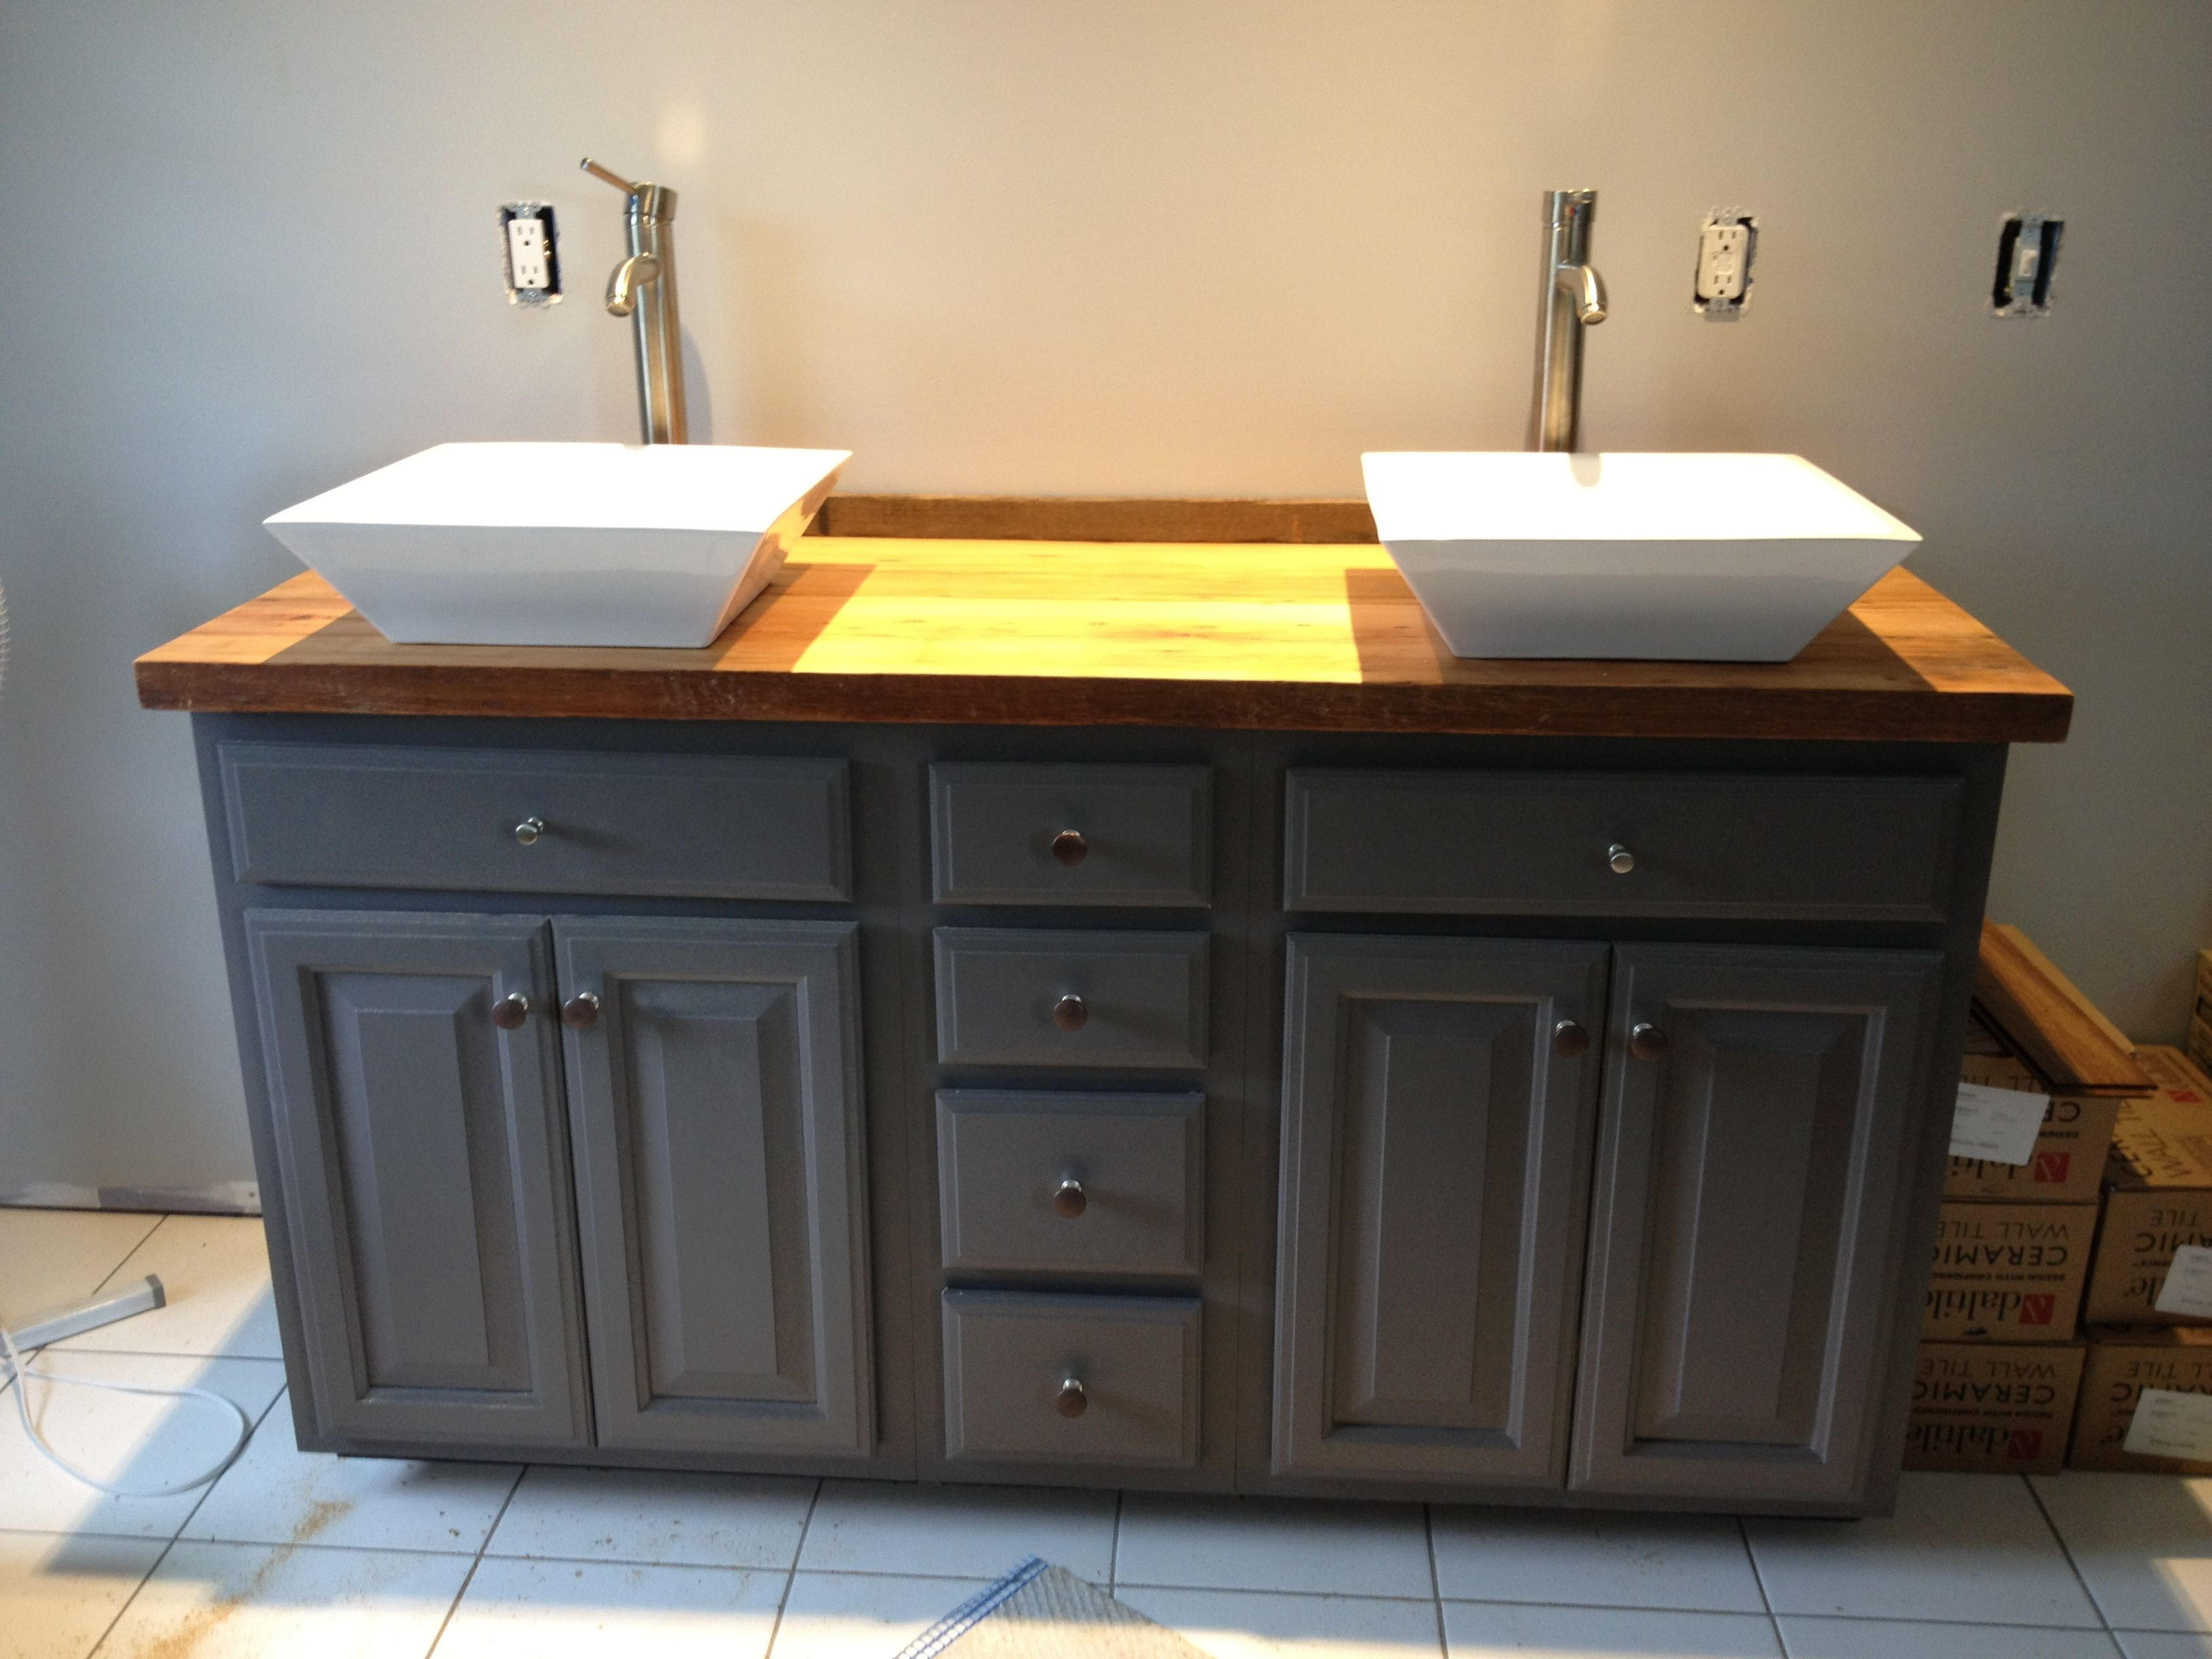 Diy Bathroom Vanity Used The Barn Wood Hemlock Pieces Finished With